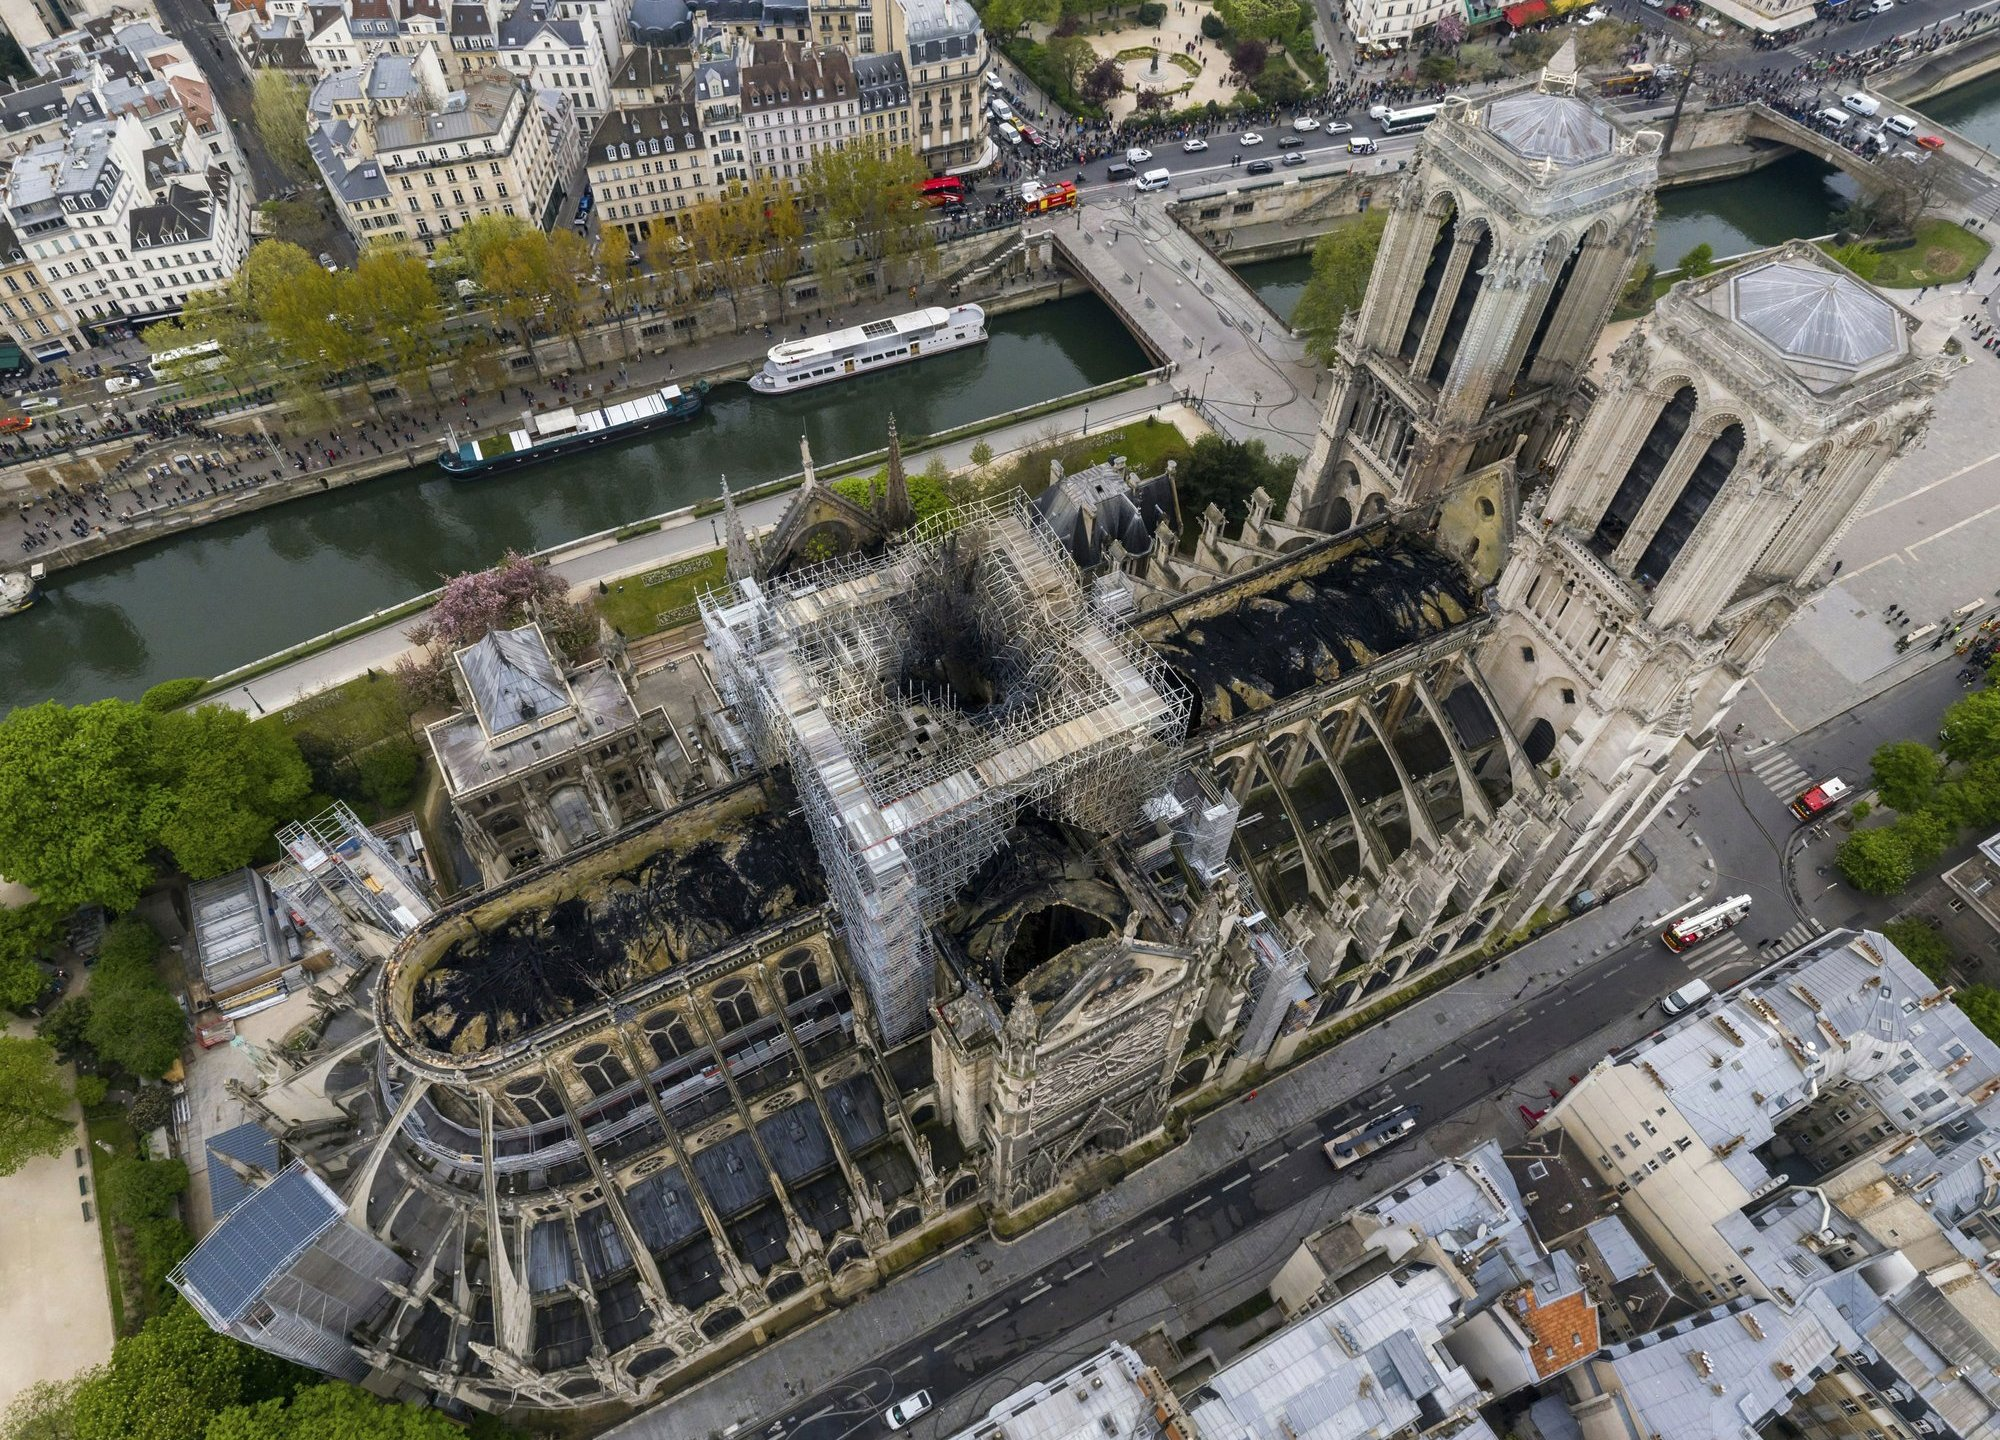 Drone image of Burned Notre Dame Cathedral